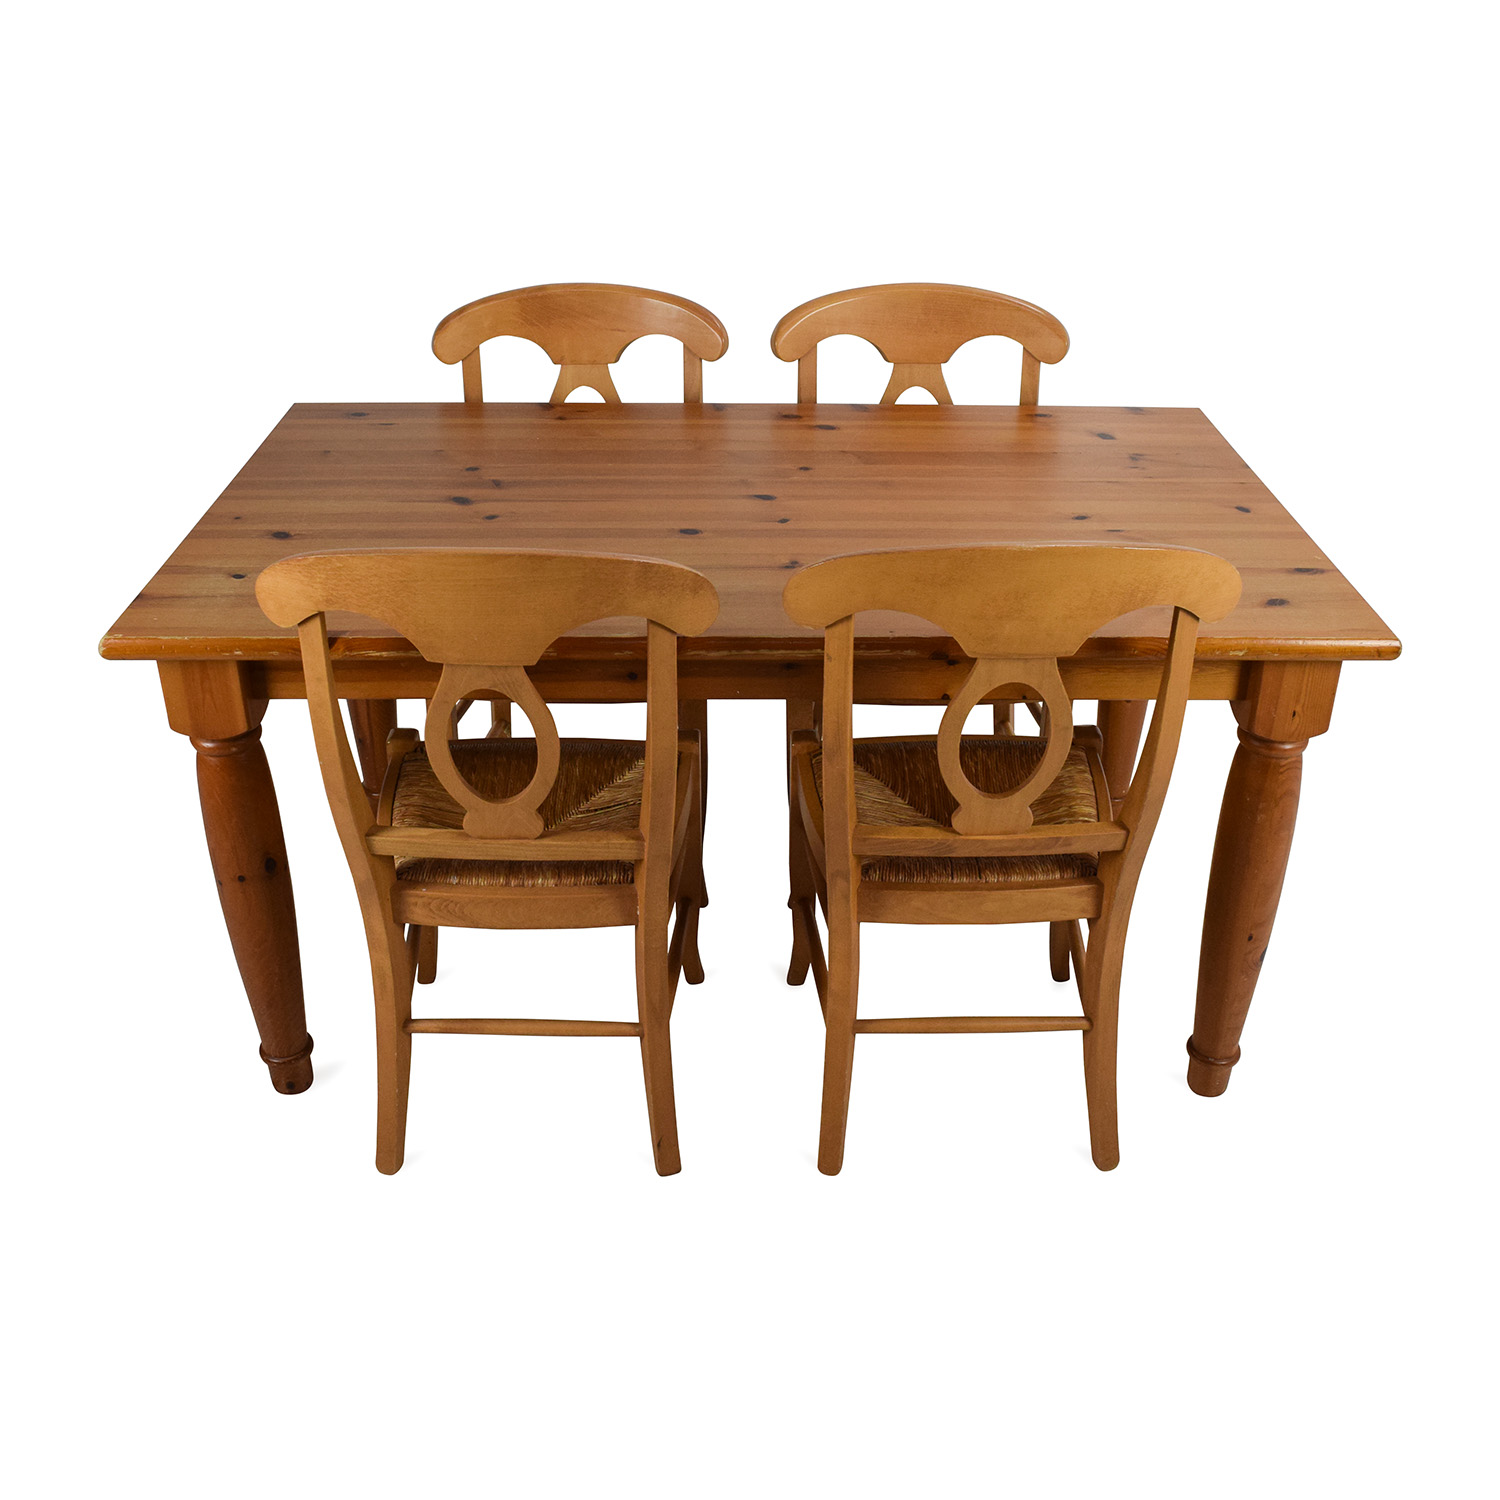 Dining Room Table With Chairs 73 Off Pottery Barn Pottery Barn Dining Room Table With